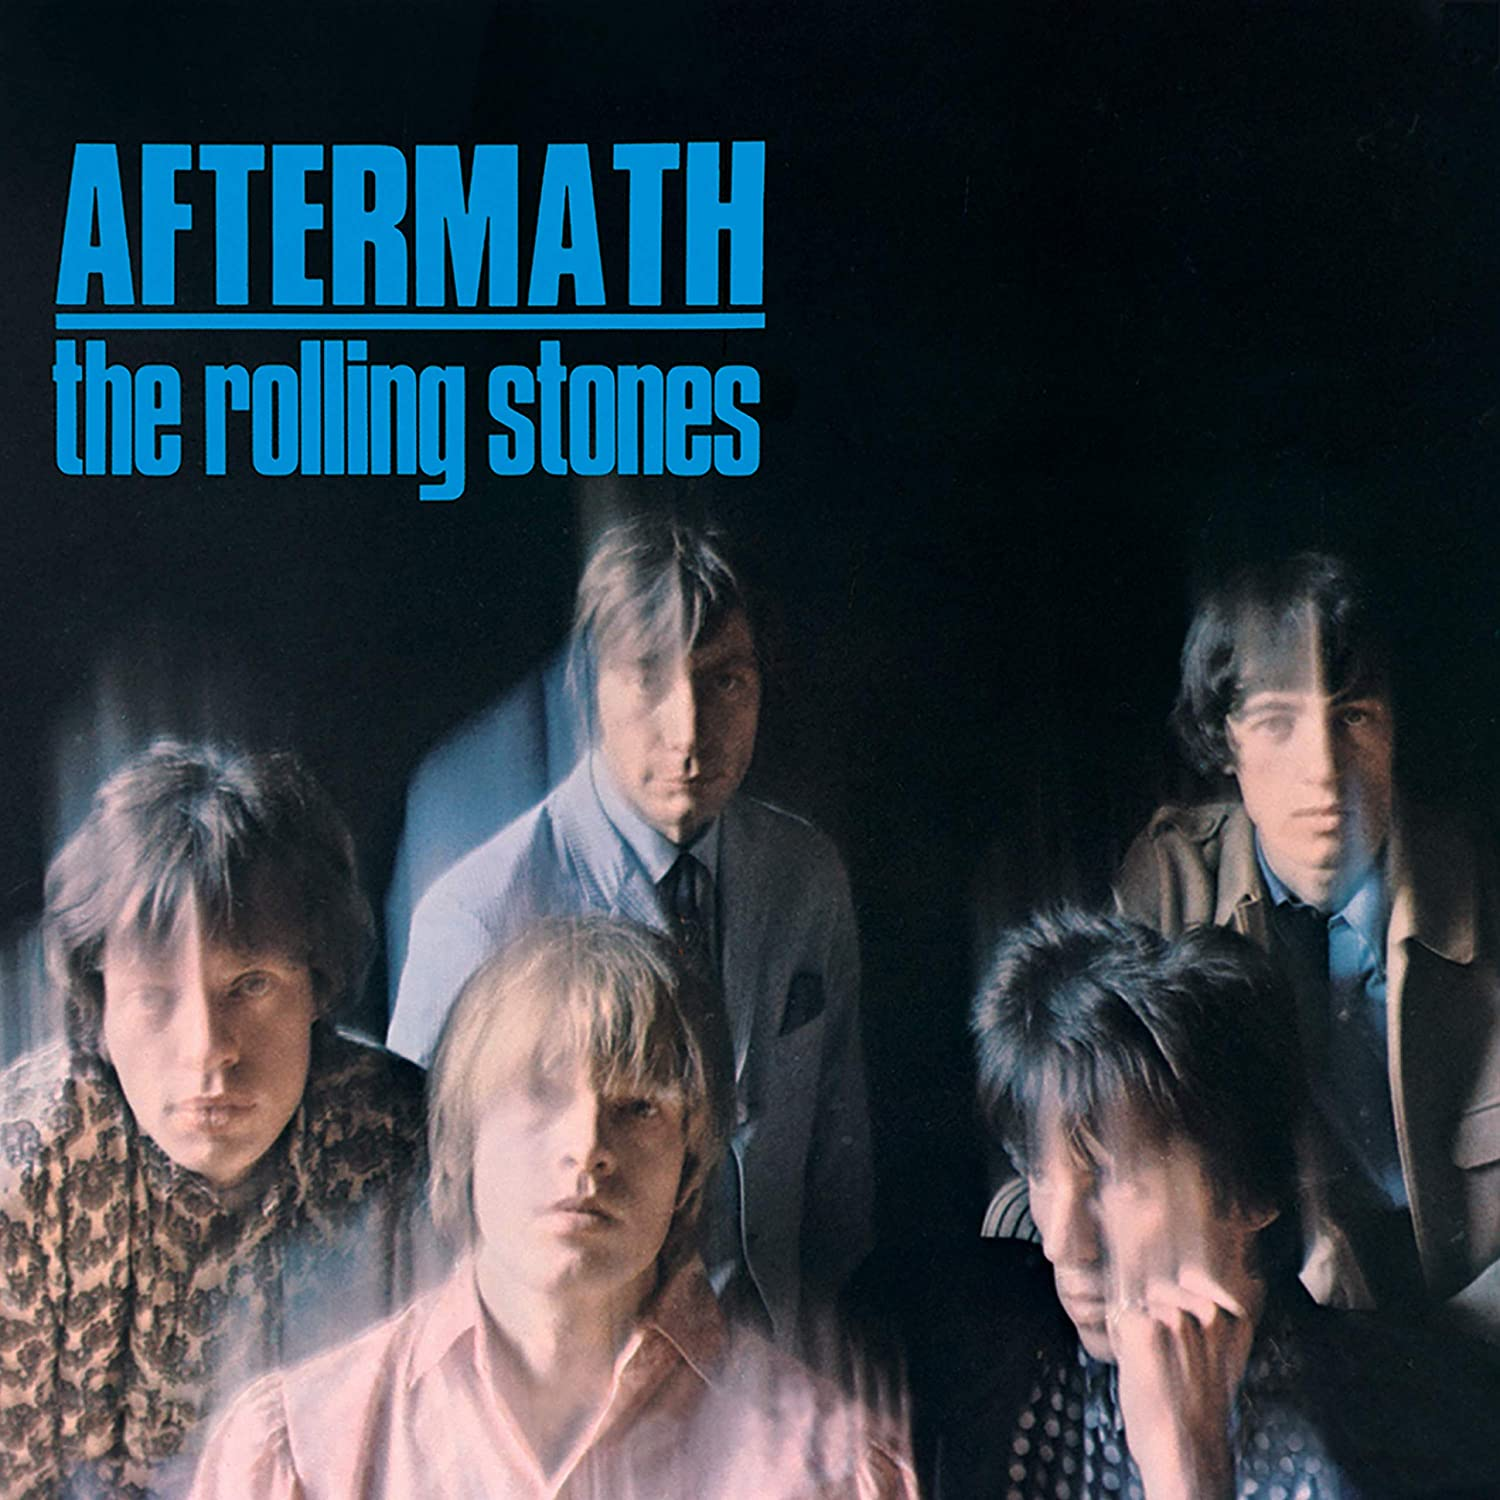 The Rolling Stones - Aftermath - Amazon.com Music